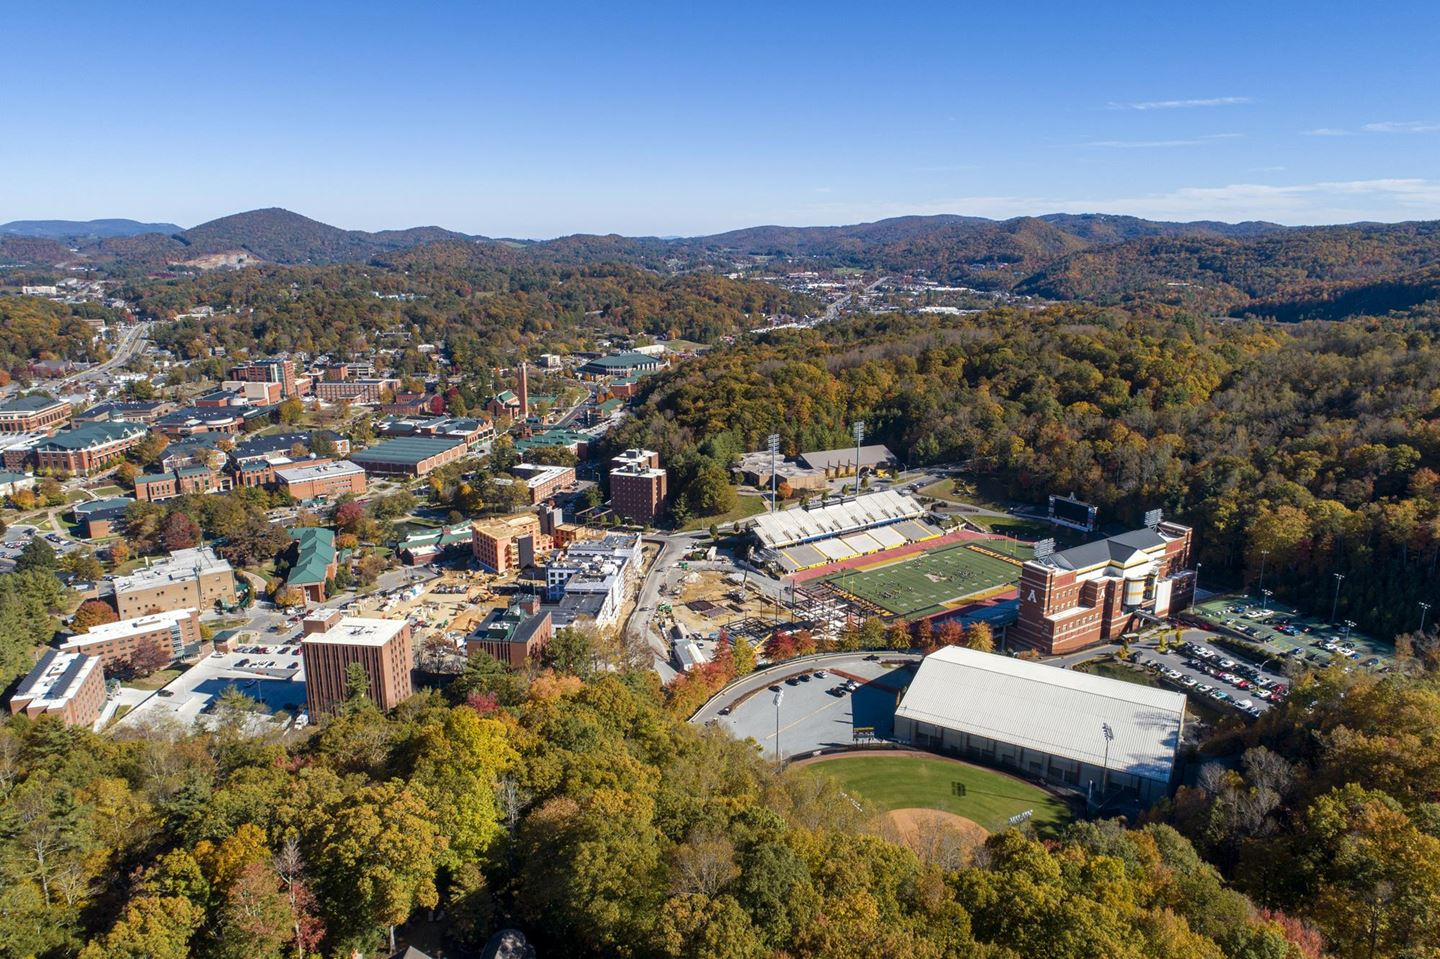 Update on App State football parking and tailgating for September